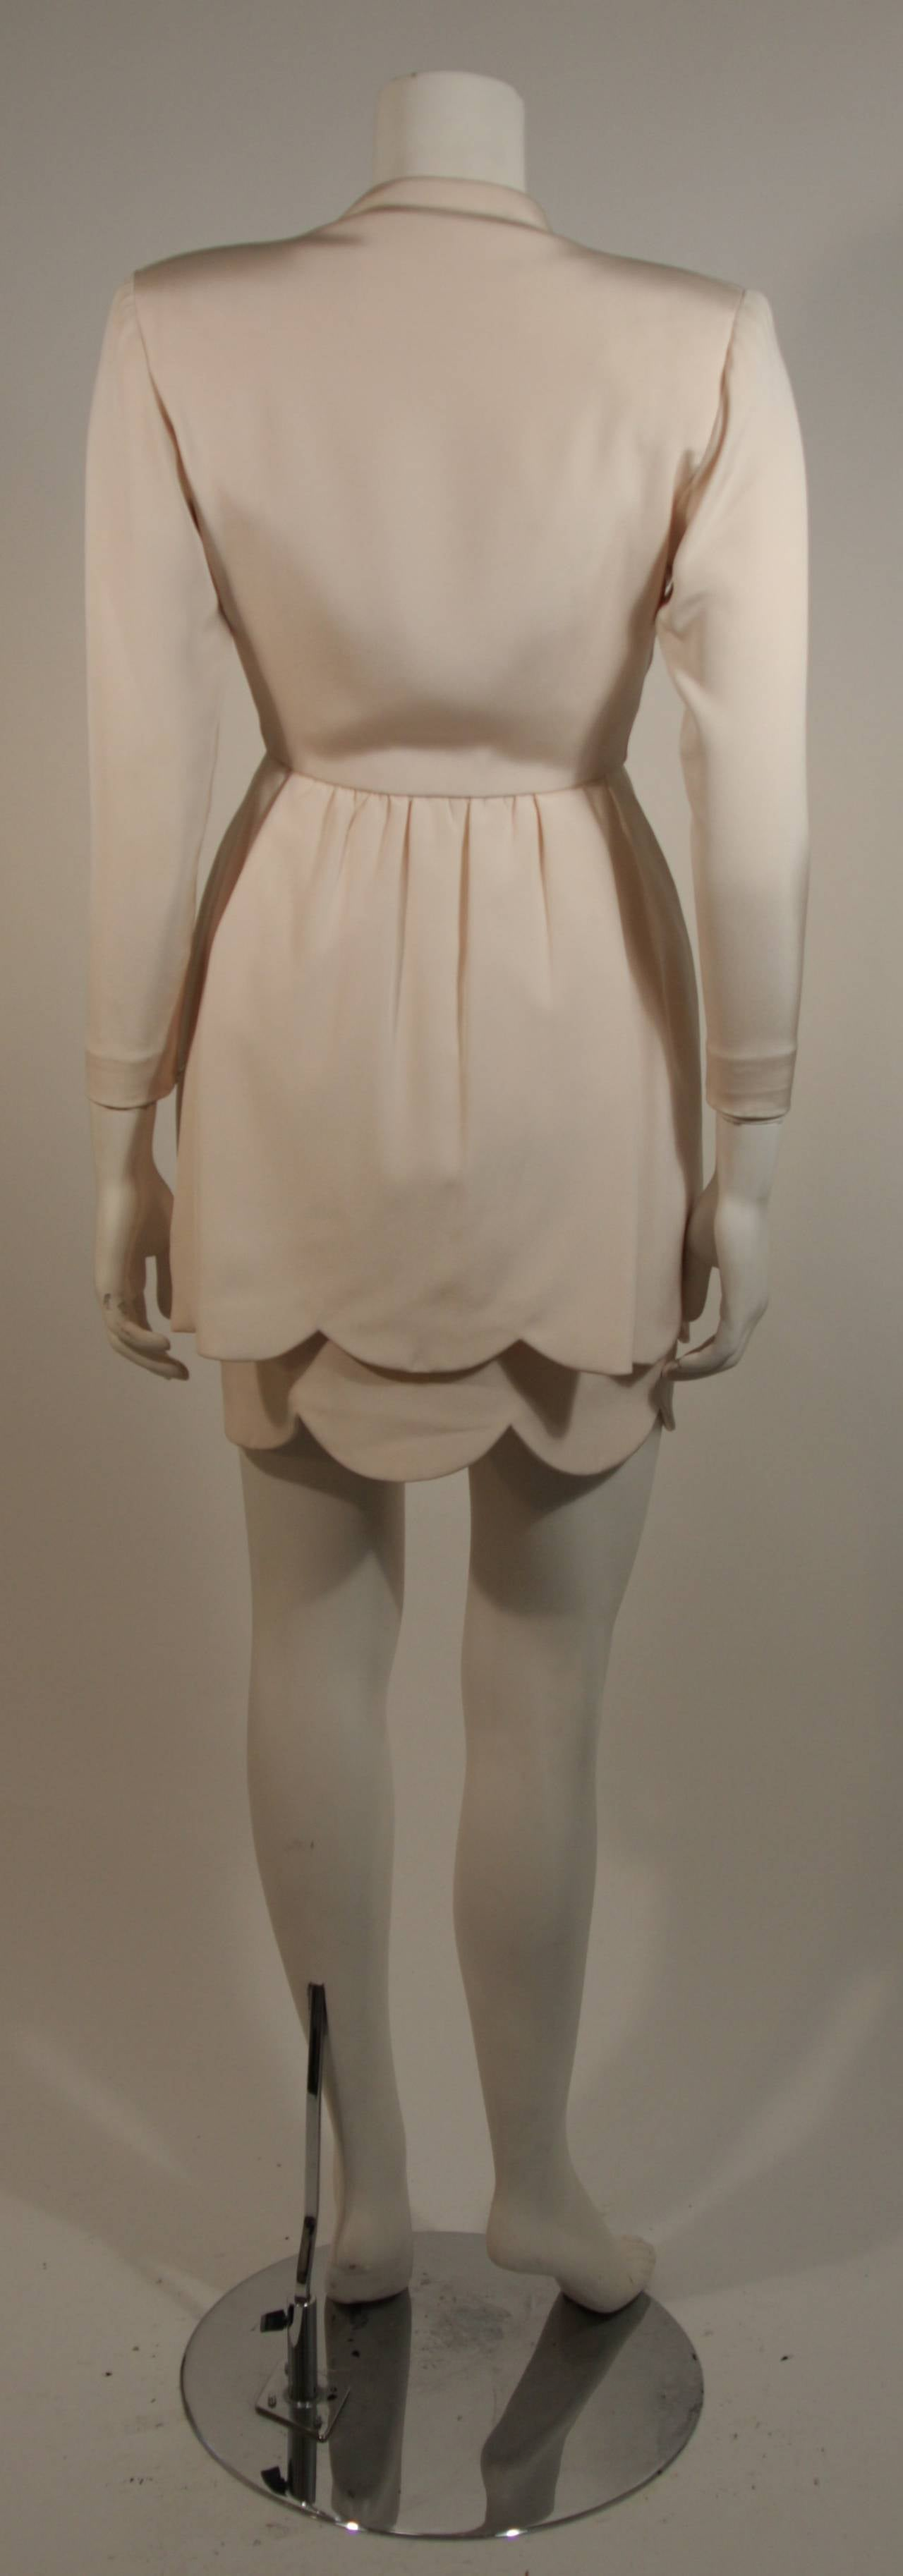 Attributed to Valentino Scallop Edge Cocktail Dress Size Small For Sale 2